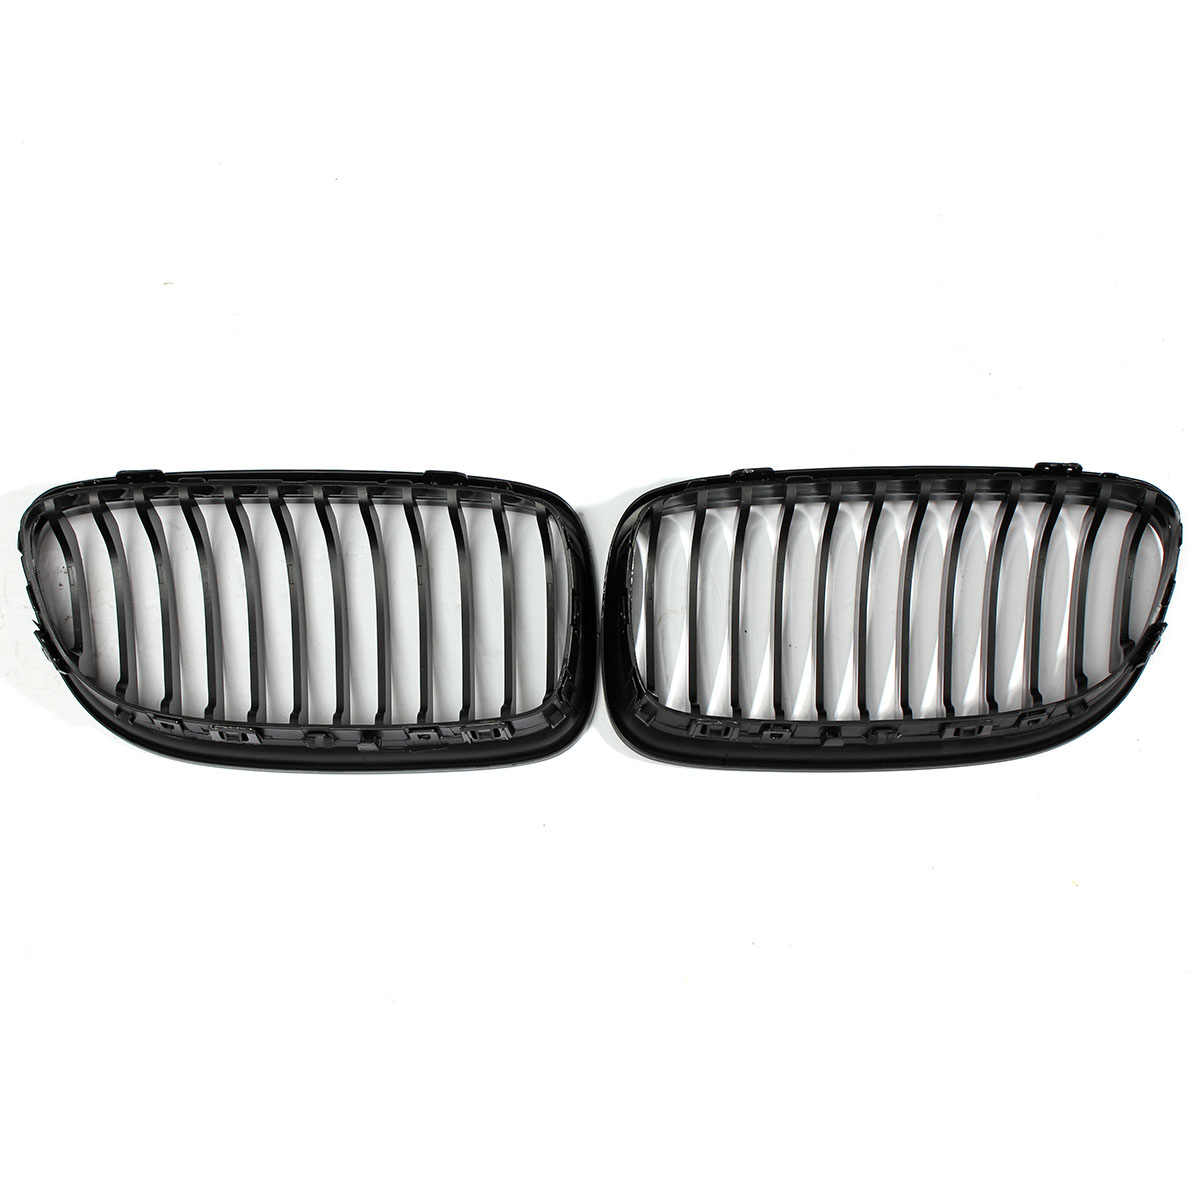 2 Pcs Mobil ABS Gloss Hitam Baking Pernis Hood Ginjal Grille Grill untuk BMW E90 2009 2010 2011 2012